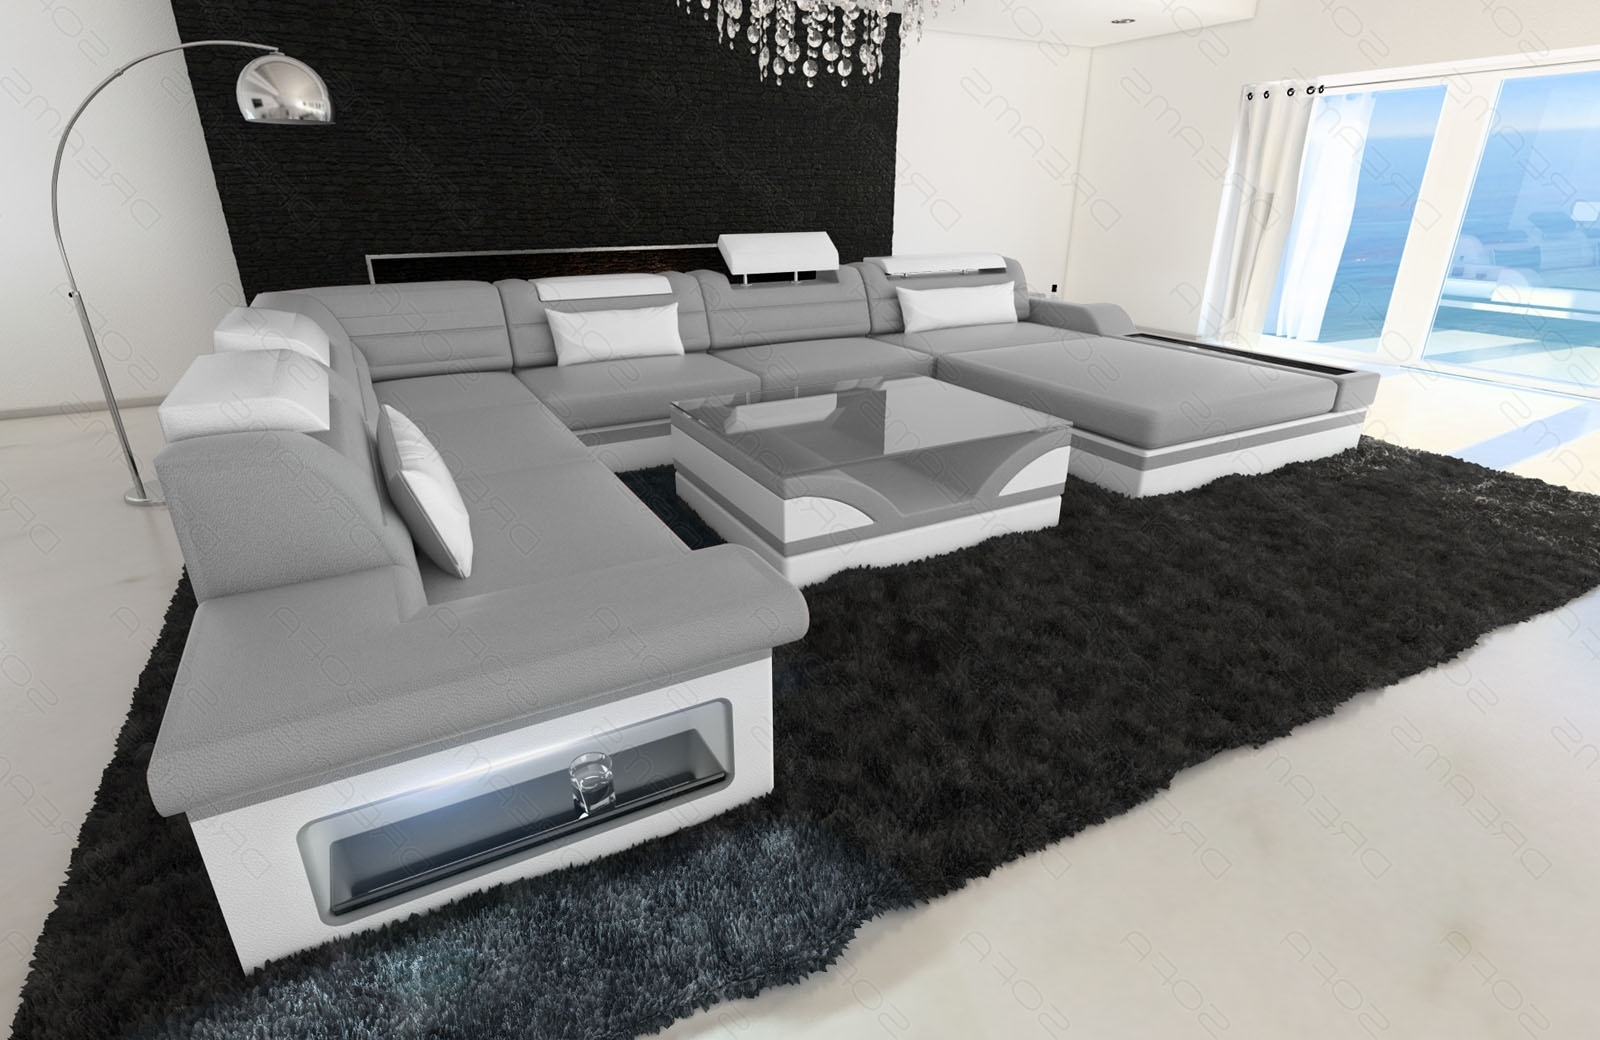 Luxury Sectional Sofas In Favorite Sofa Mezzo Xxl With Led Lights Genuine Leather Luxury Design (View 7 of 15)